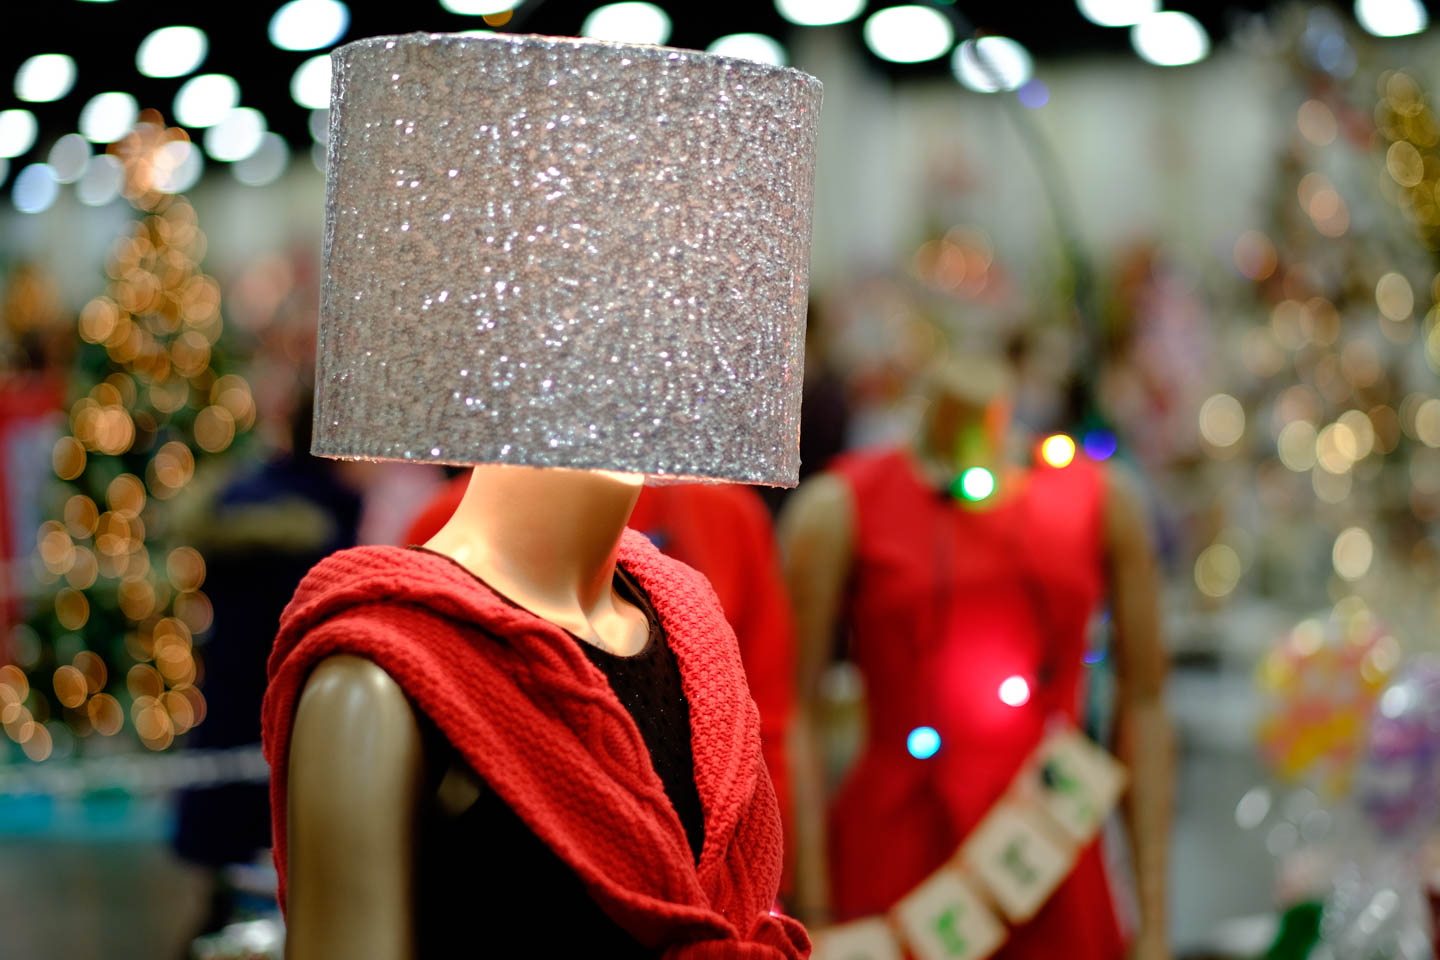 Lamp shade on the head